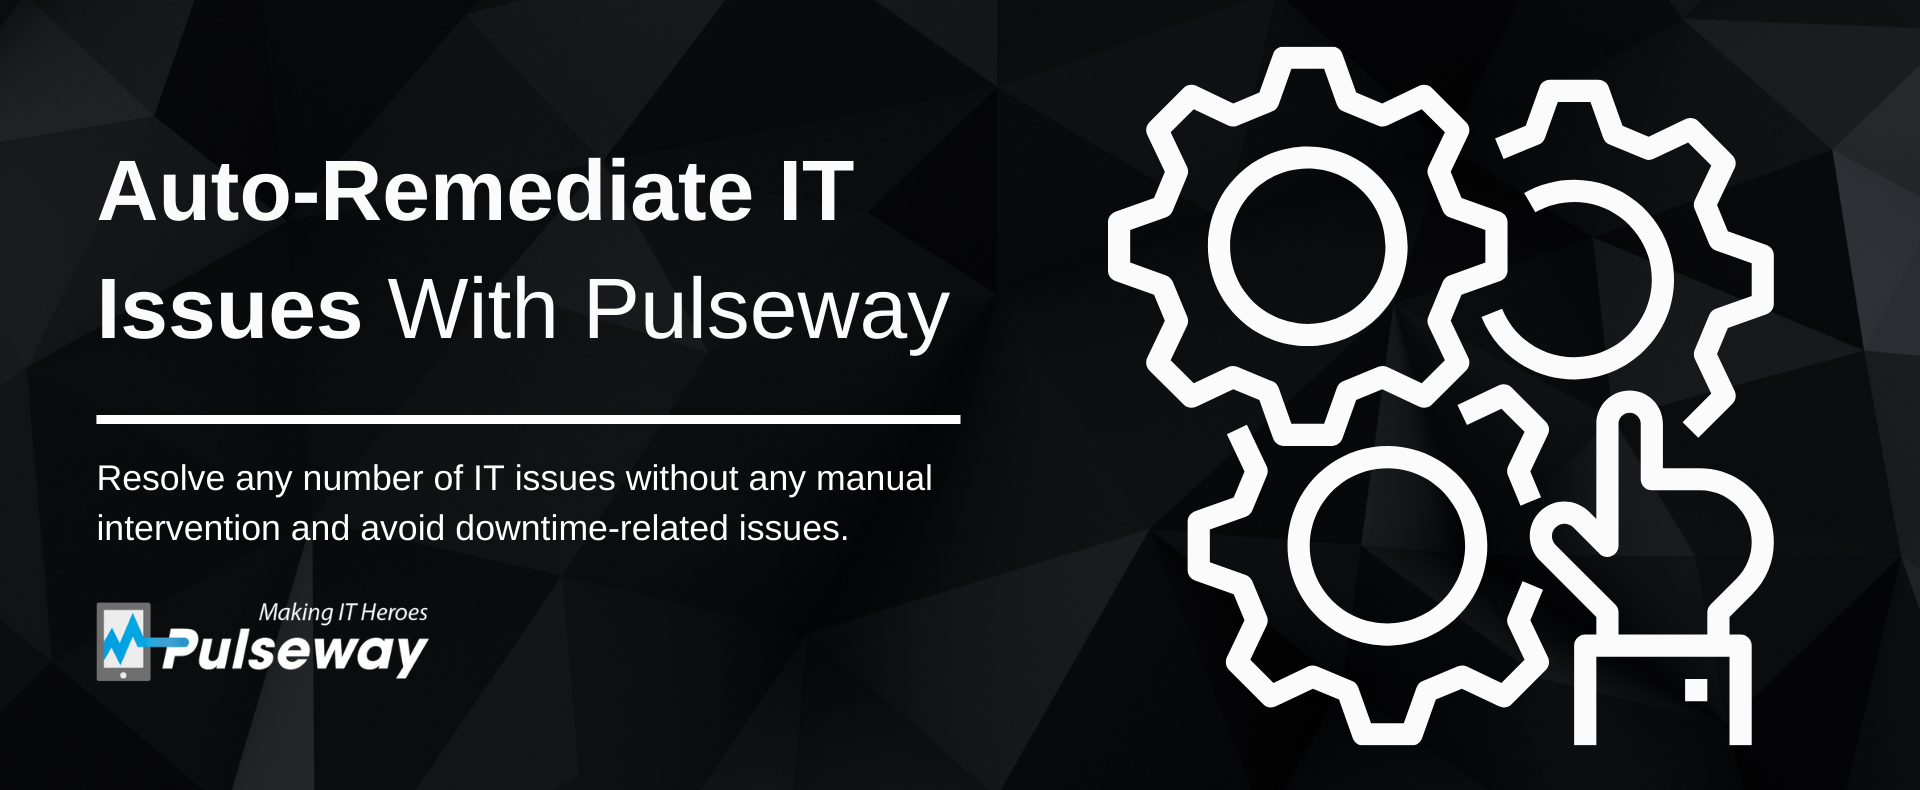 Auto-Remediate IT Issues With Pulseway Automation Workflows